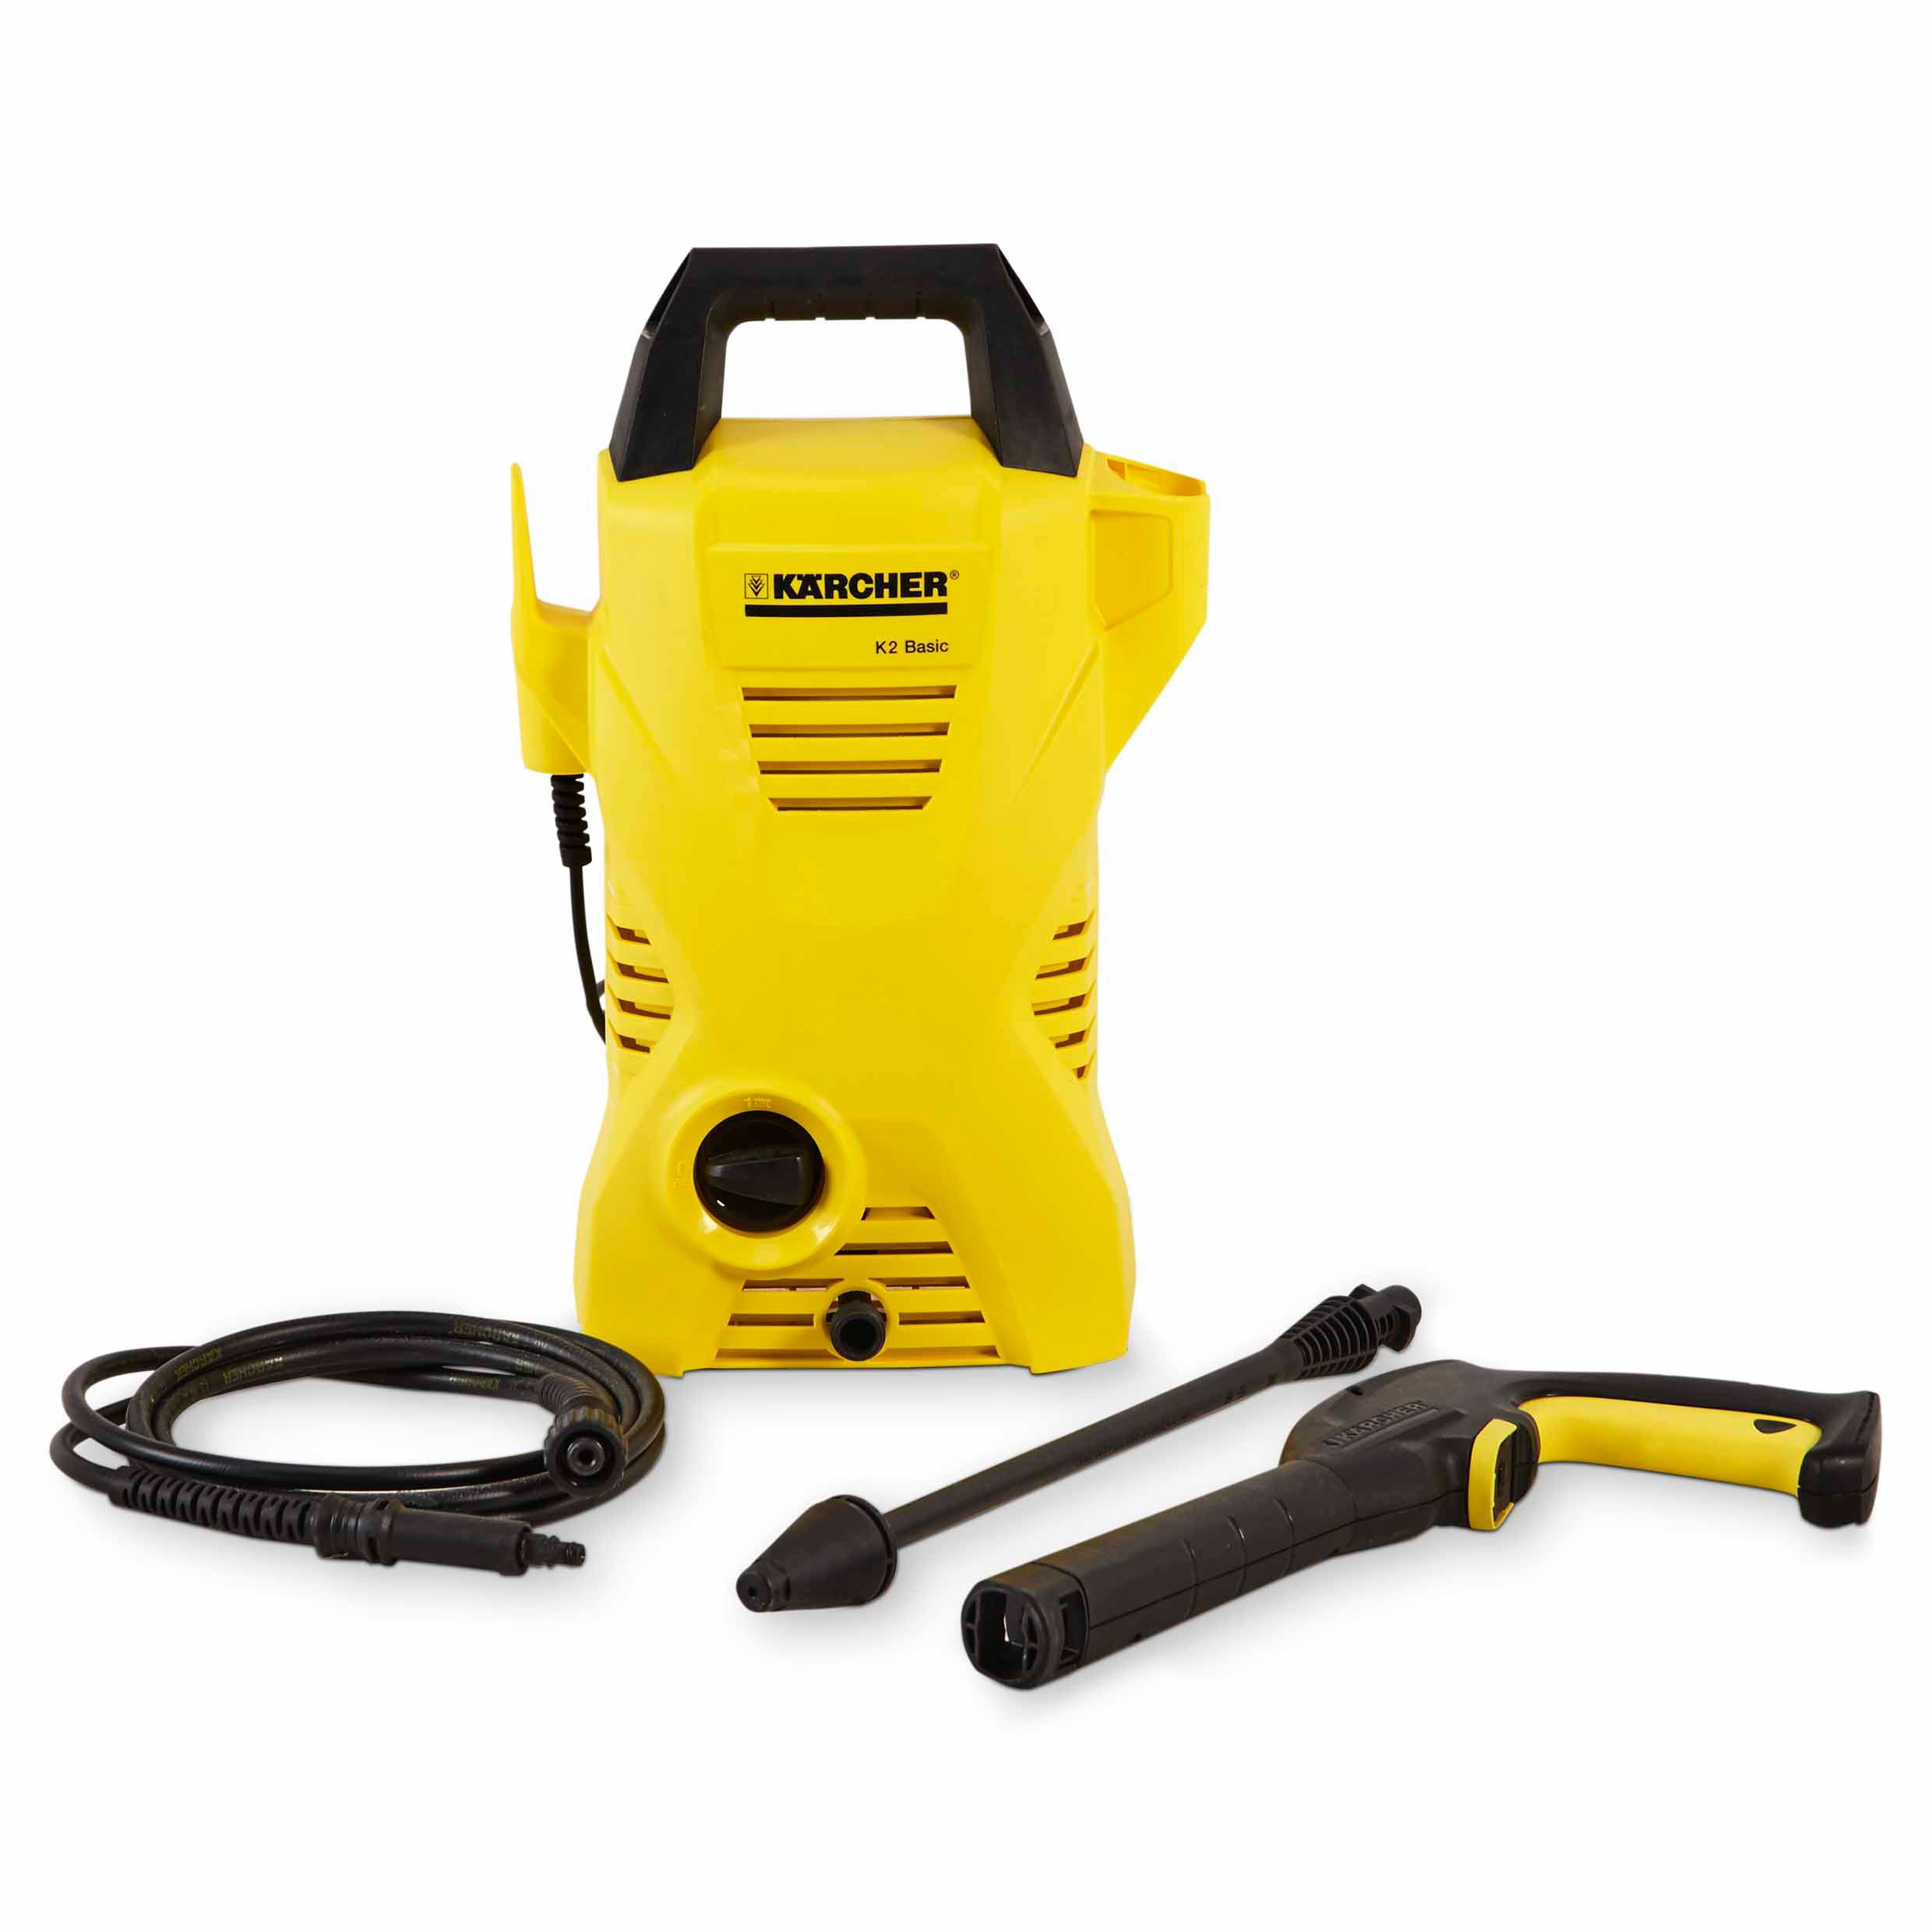 karcher pressure washer karcher k2 basic pressure washer departments diy at b amp q 11070